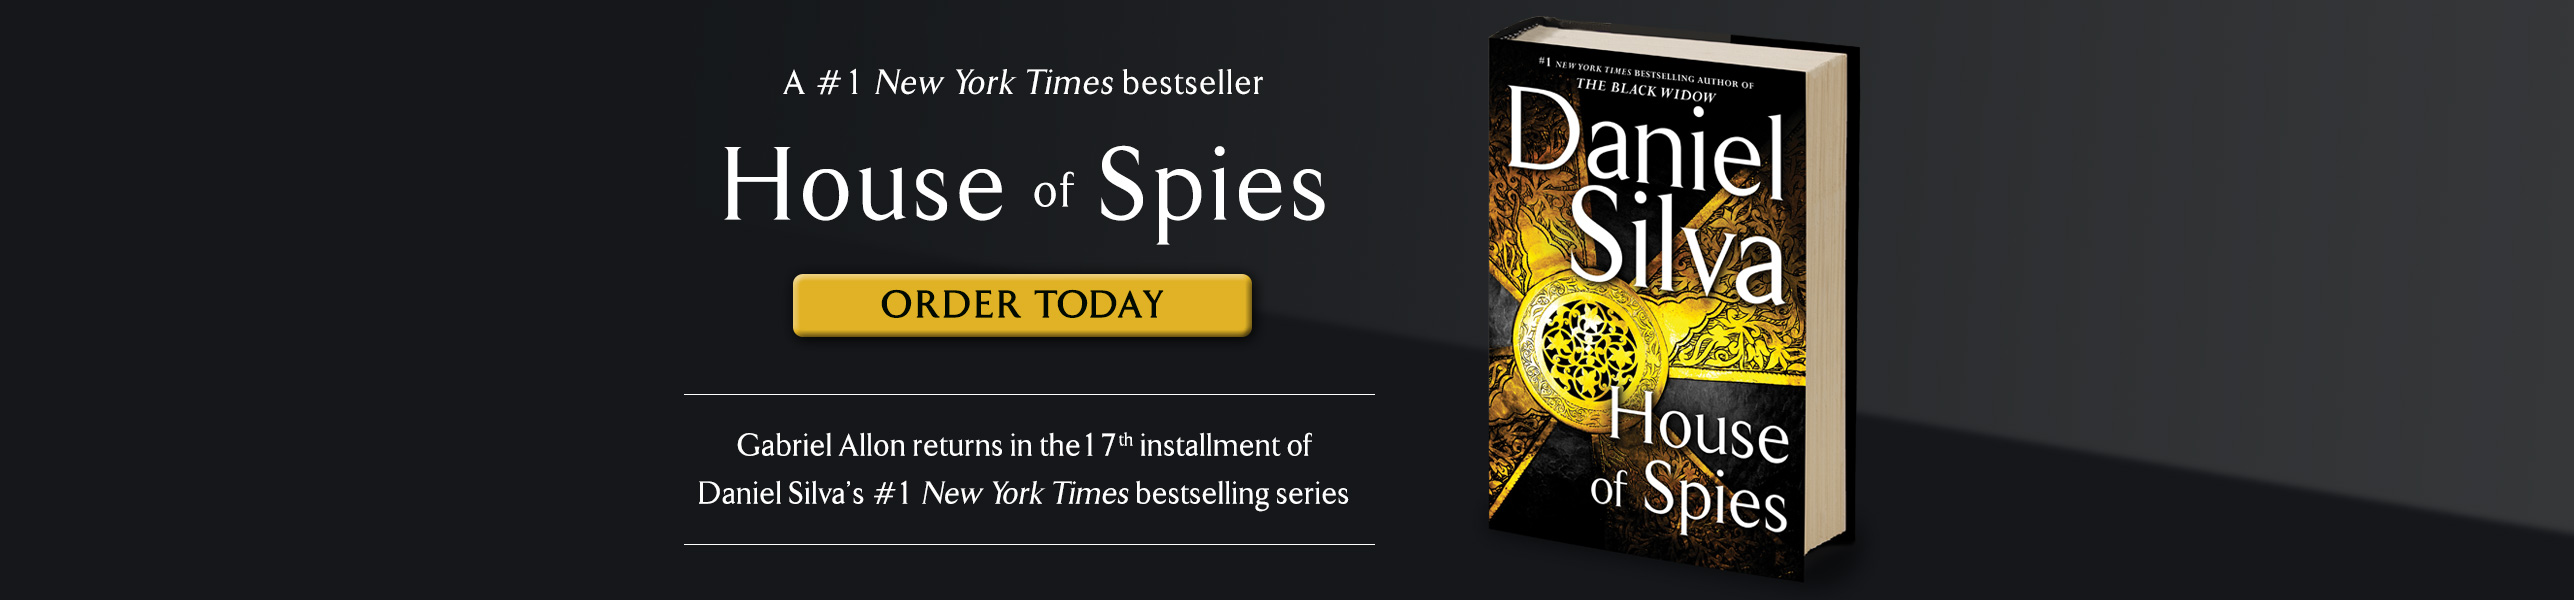 House of Spies, the 17th installment of the #1 New York Times bestselling Gabriel Allon series, is on sale now!